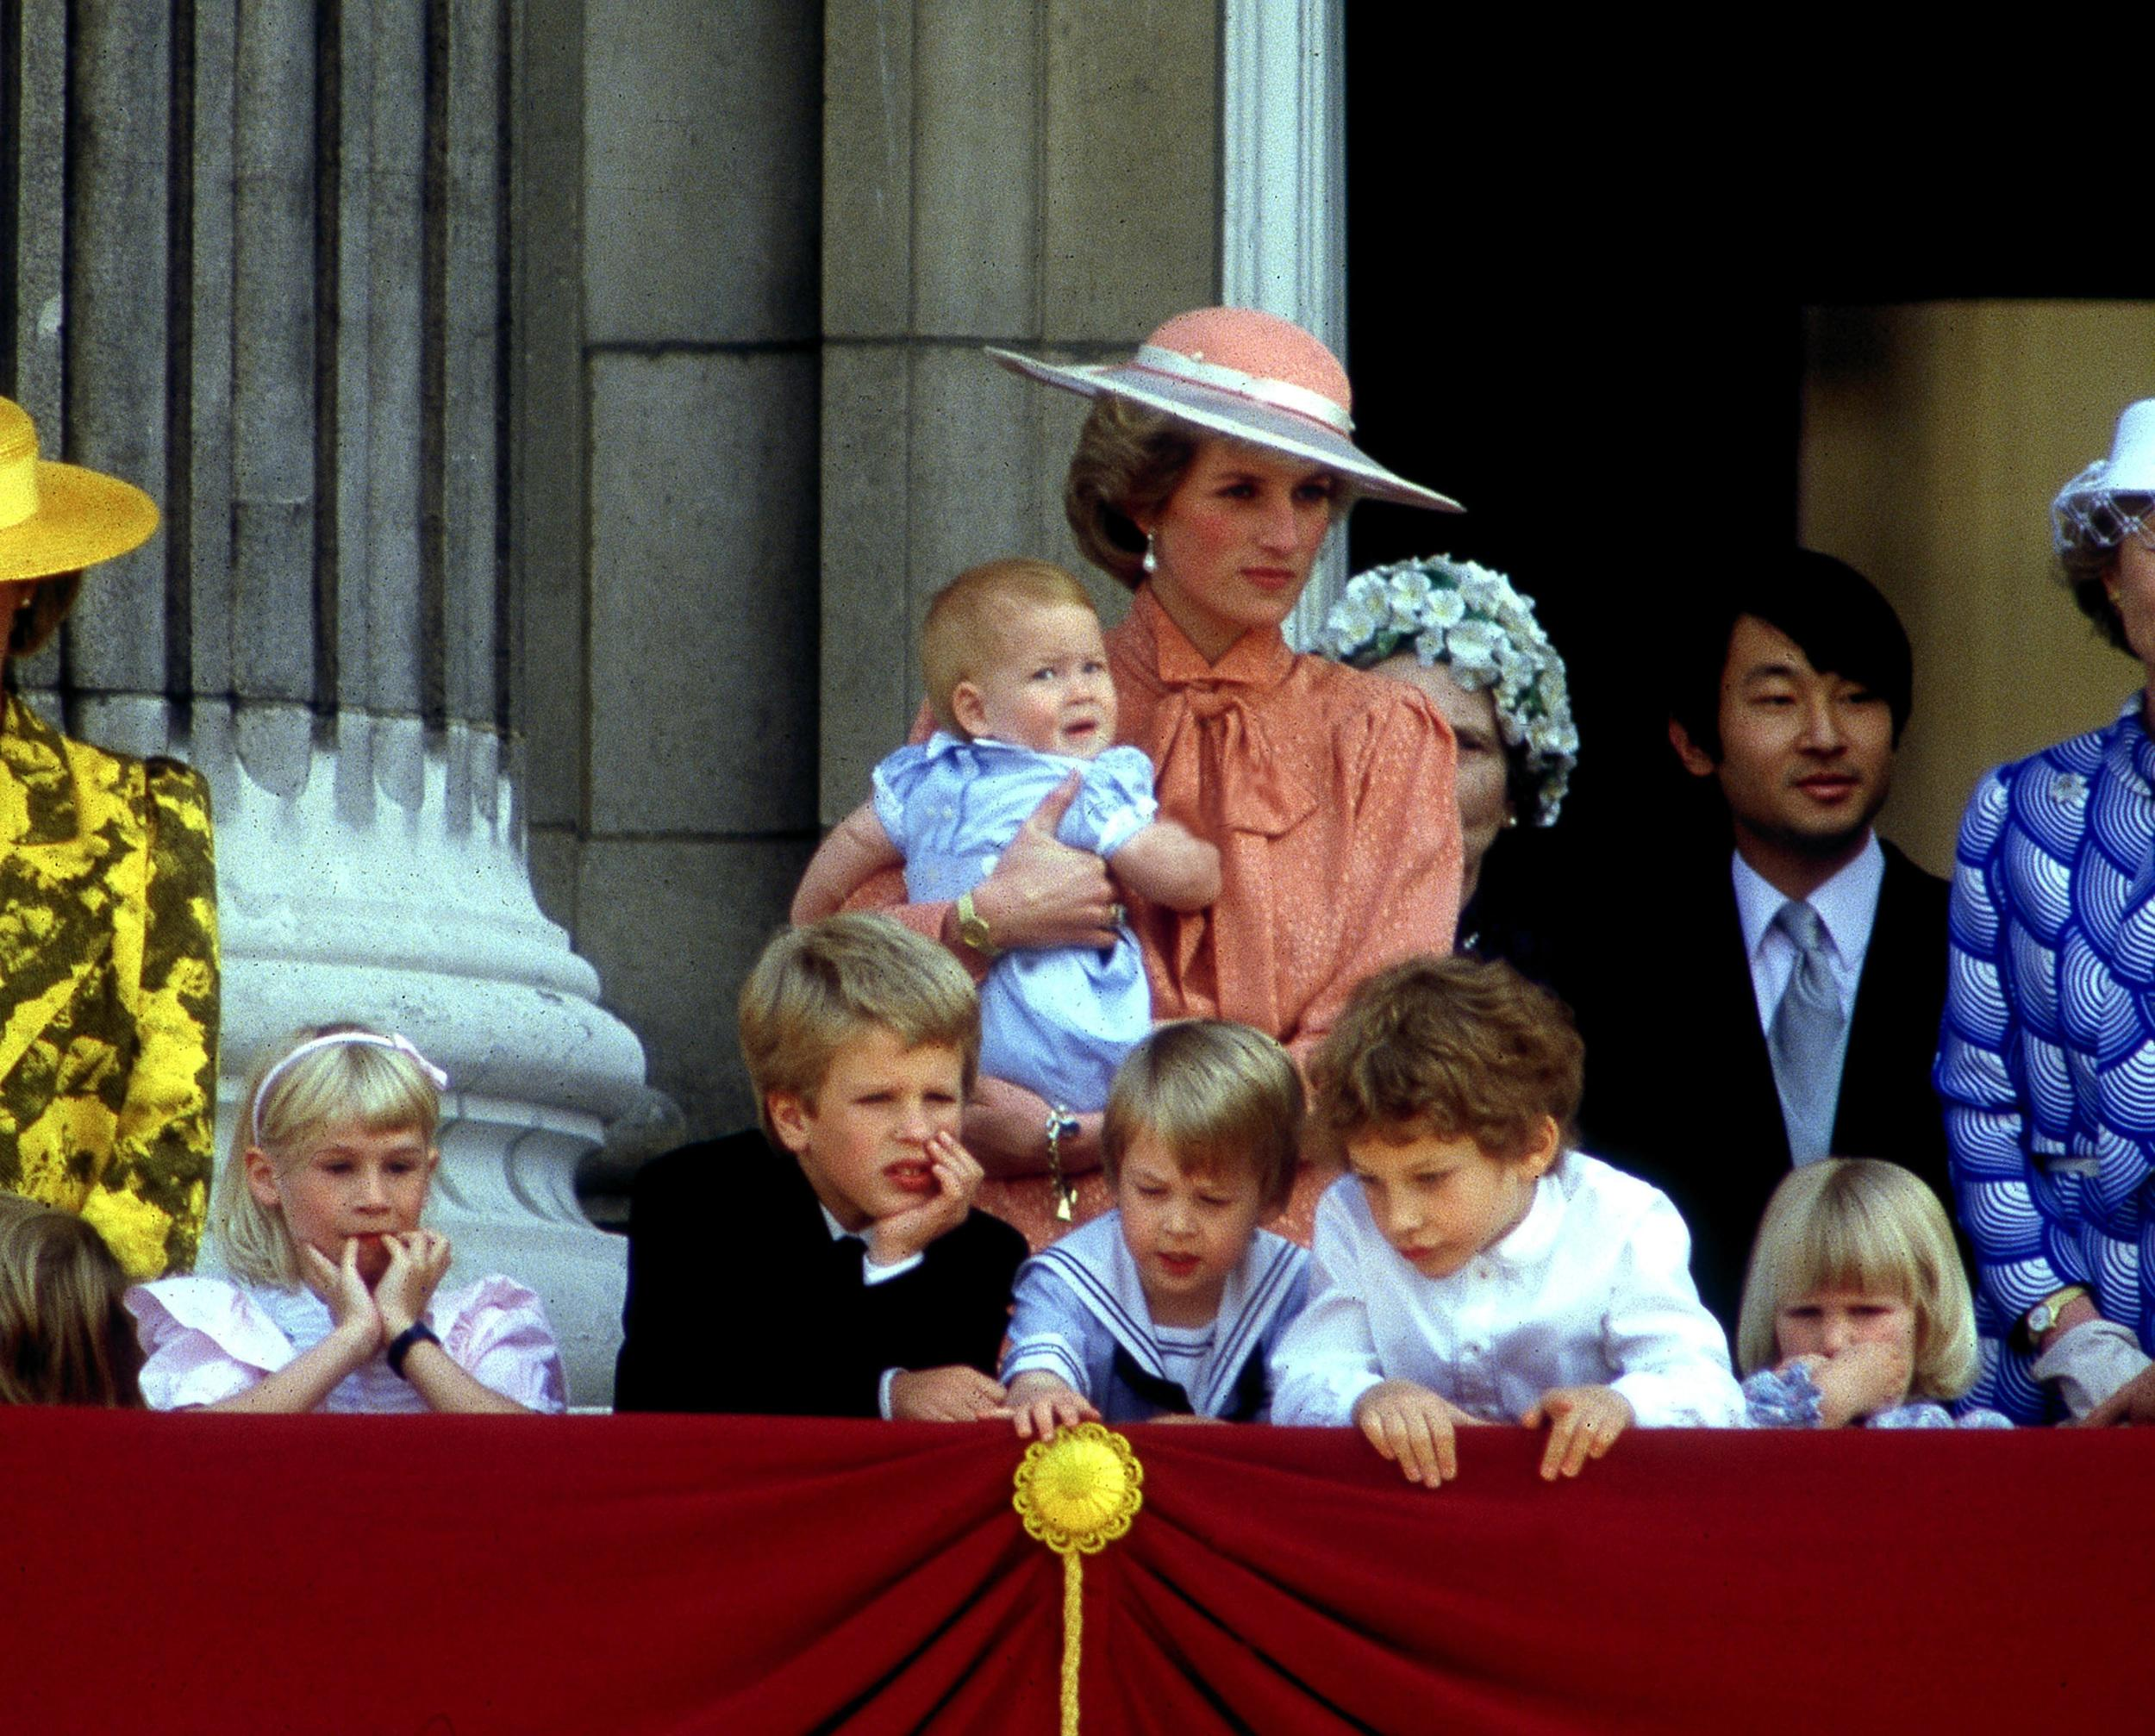 Princess Diana (1961 - 1997) holds her son Prince Harry as she watches the Trooping of the Colour from the balcony of Buckingham Palace, London, June 1985. On the right is Naruhito, Crown Prince of Japan. The children in the foreground are: (left to right) Lady Davina Windsor (now Lewis), Peter Phillips, Prince William, Lord Frederick Windsor and Lady Rose Windsor. (Photo by Jayne Fincher/Princess Diana Archive/Getty Images)